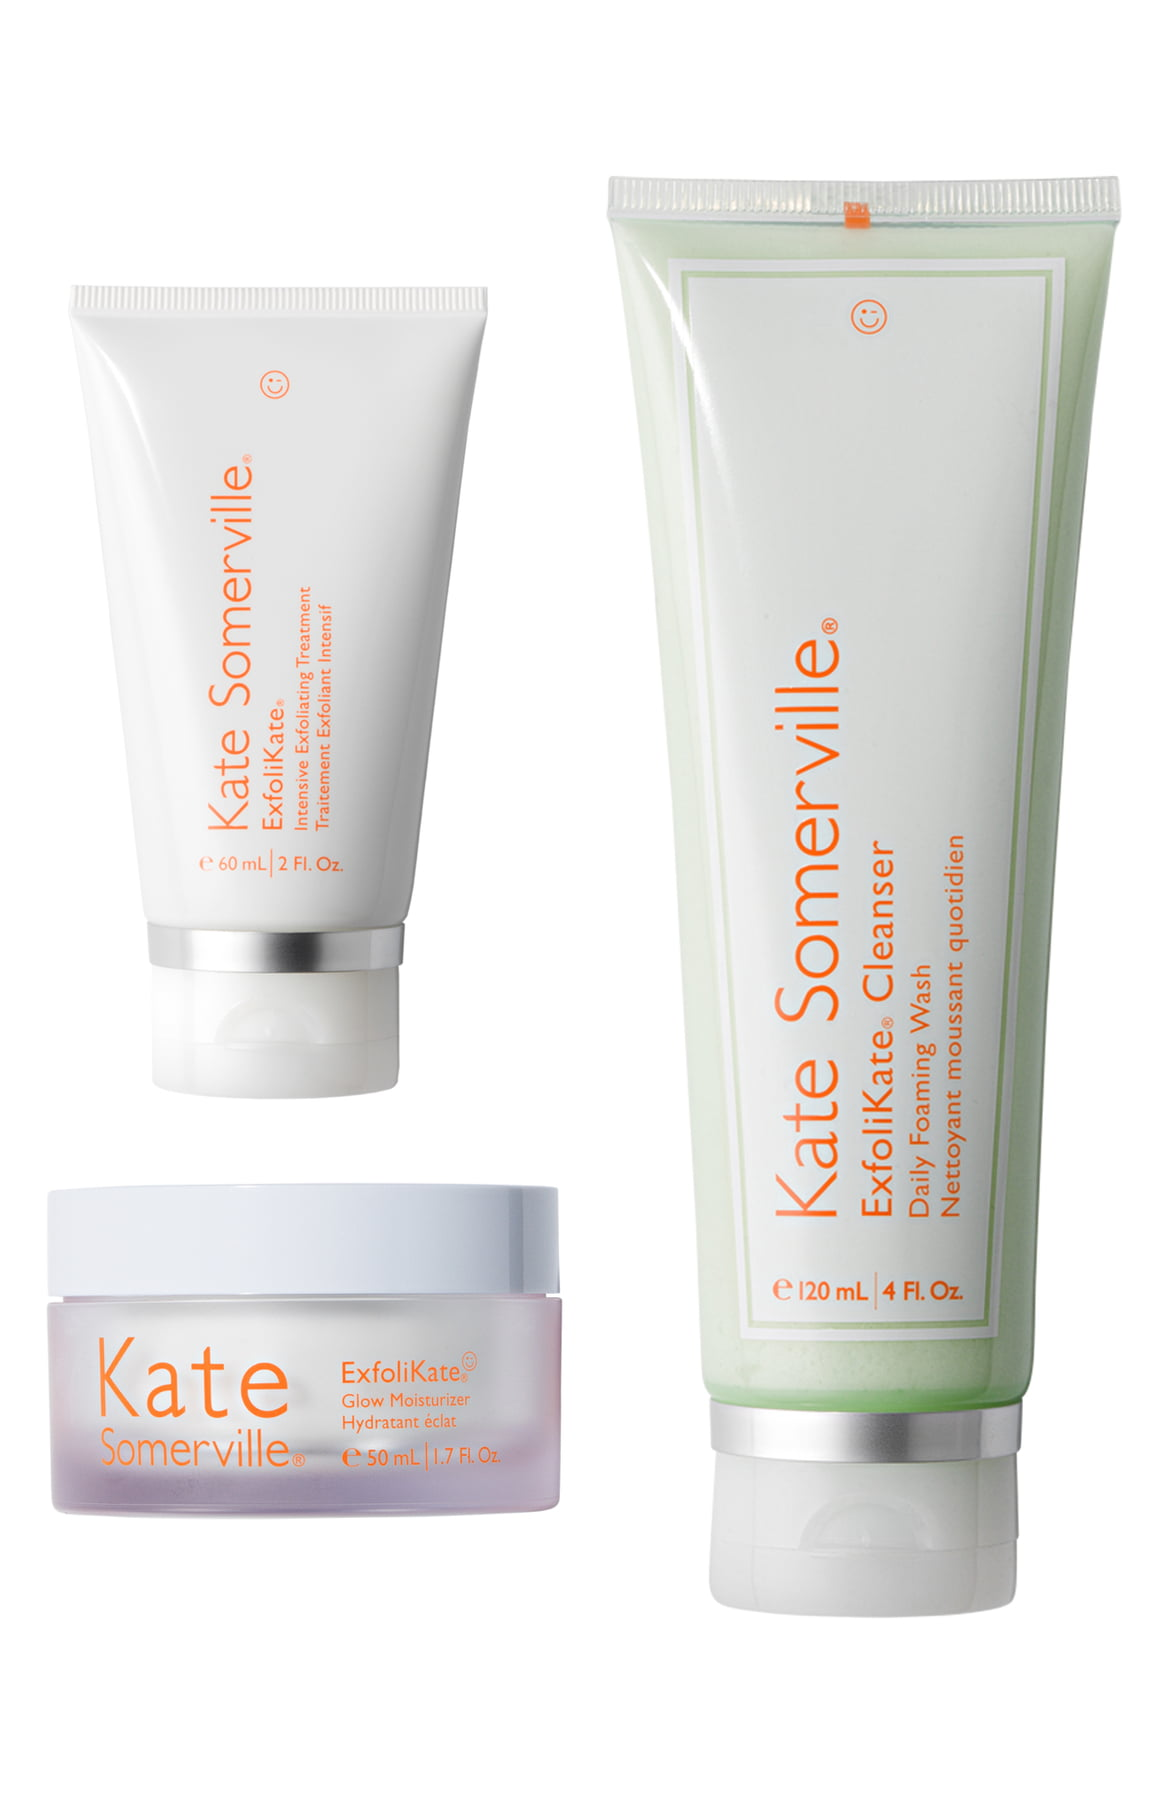 Mom will love this limited-edition, three-piece set of Kate's best-selling exfoliating products to give the ultimate glow.{ } $120 @ Nordstrom. (Image: Nordstrom){ }